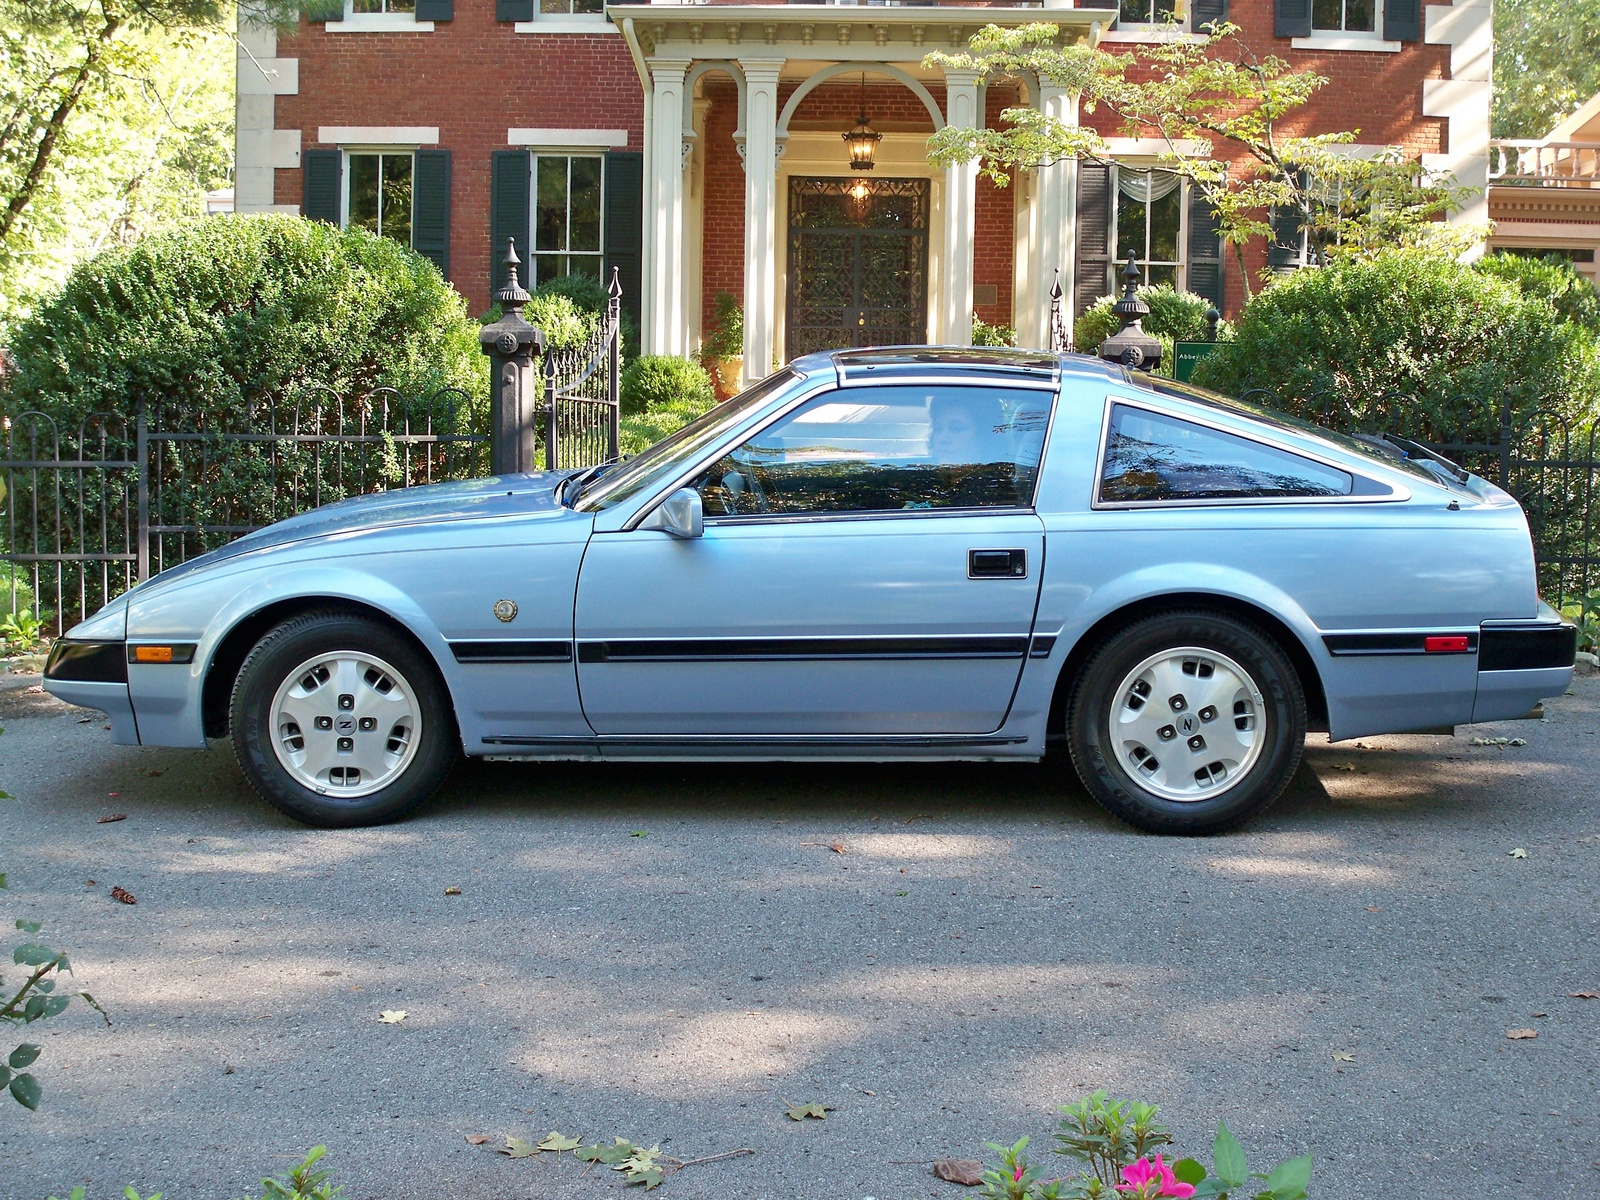 Sunny King Ford >> 1984 Nissan 300ZX - Exterior Pictures - CarGurus